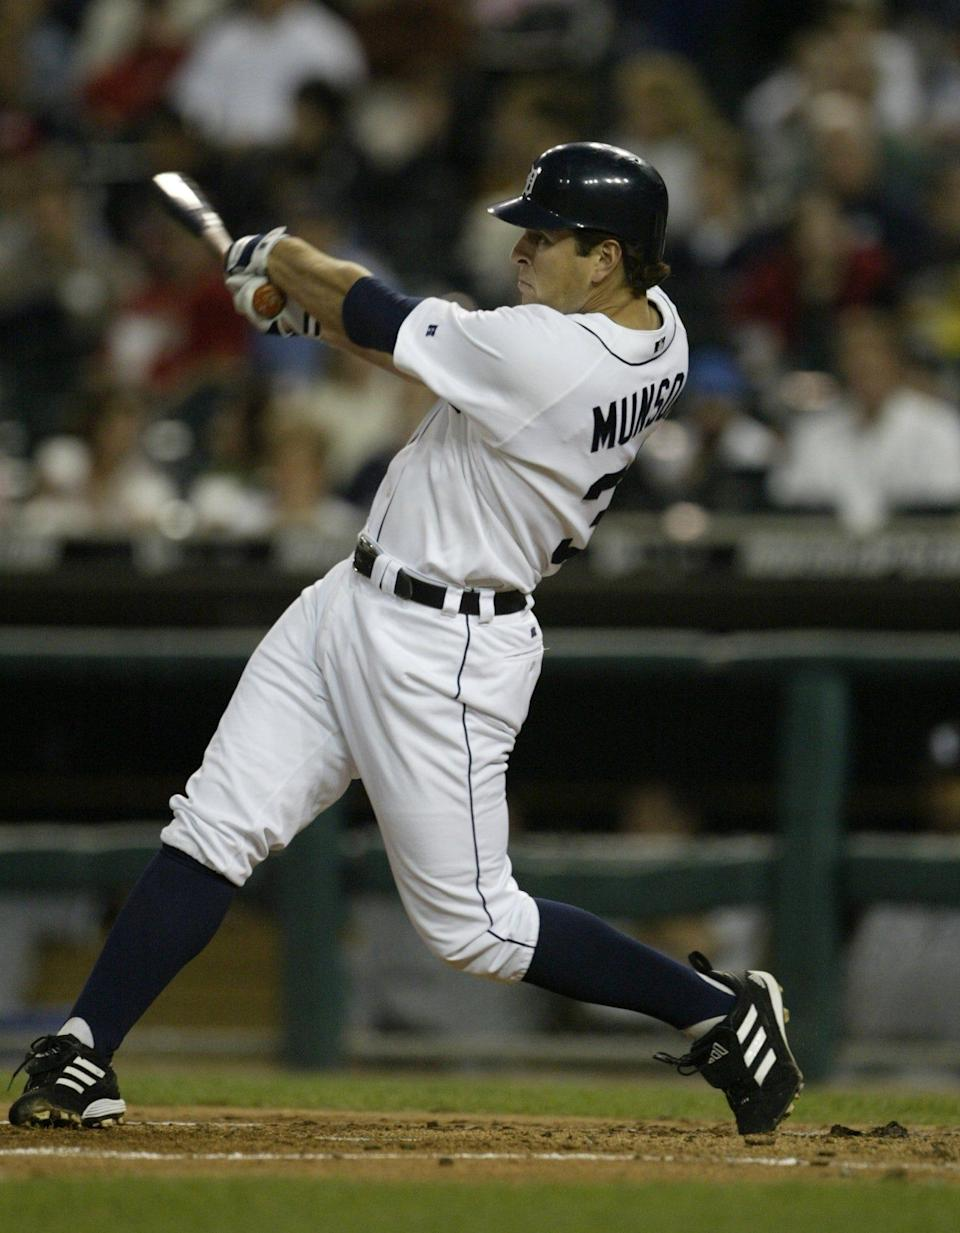 Detroit Tigers' Eric Munson (31) swings into an out against the Chicago White Sox at Comerica Park in Detroit on Monday, Sept. 27, 2004